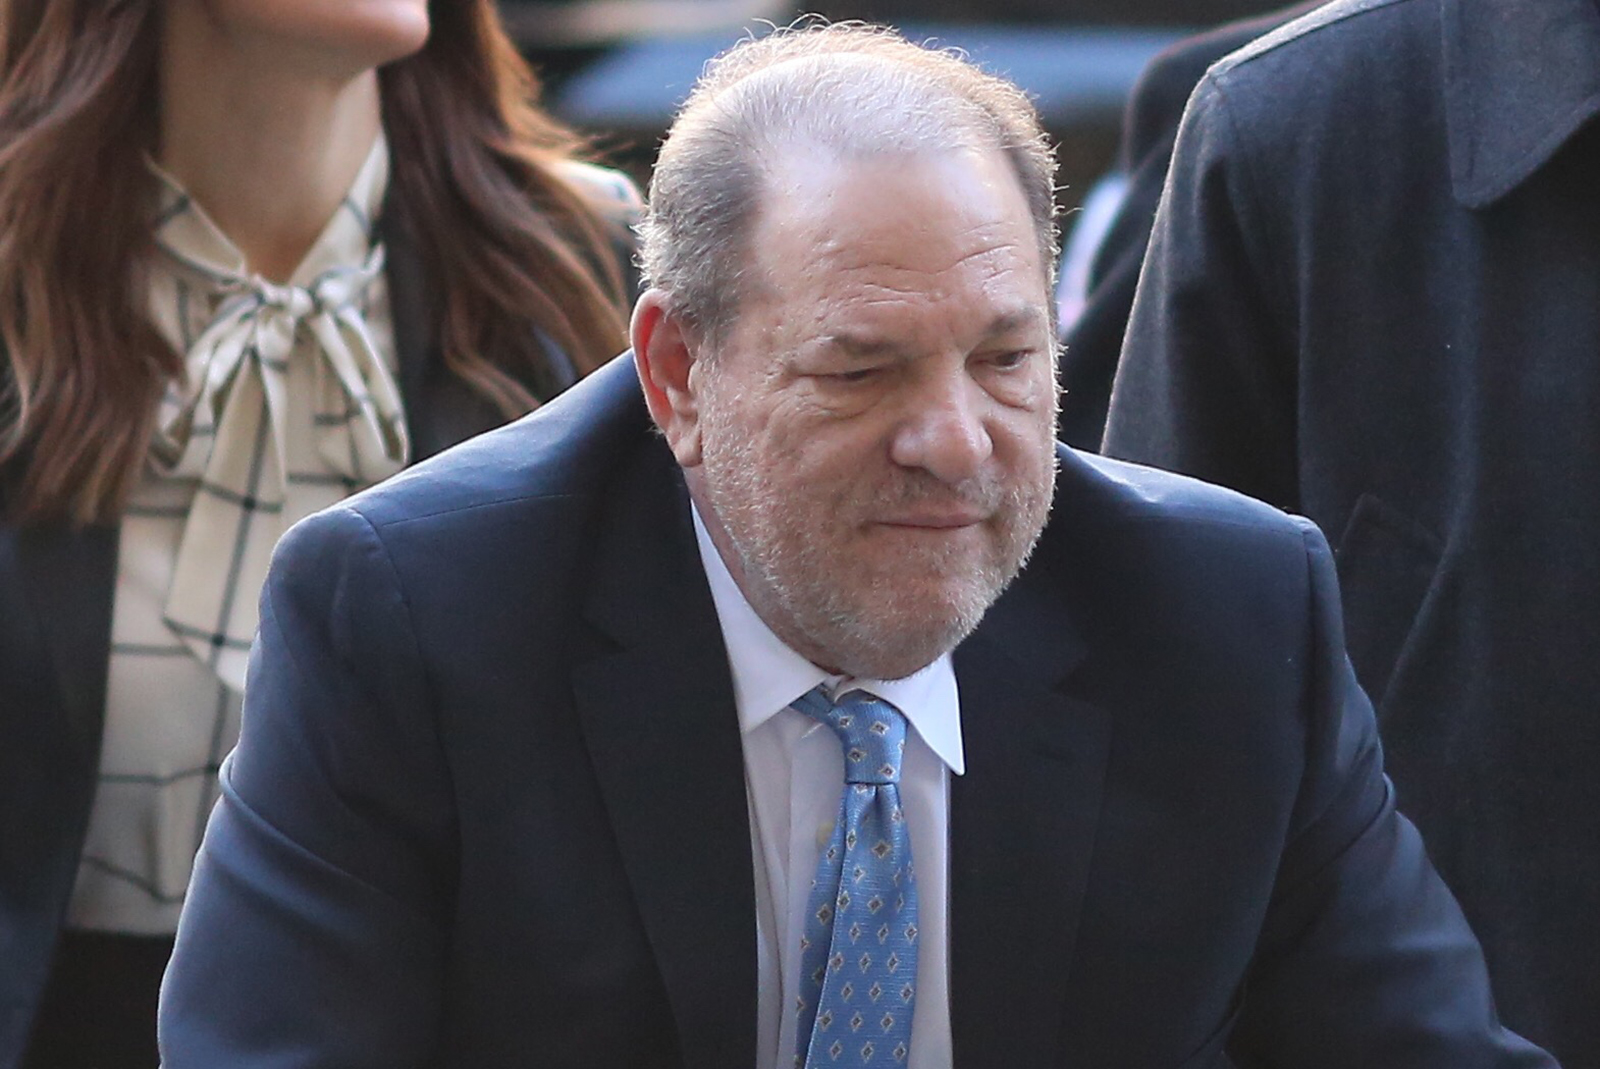 Harvey Weinstein arrives at Manhattan Criminal Court with his attorneys on Feb. 24, 2020. (Alec Tabak/New York Daily News/Tribune News Service via Getty Images)